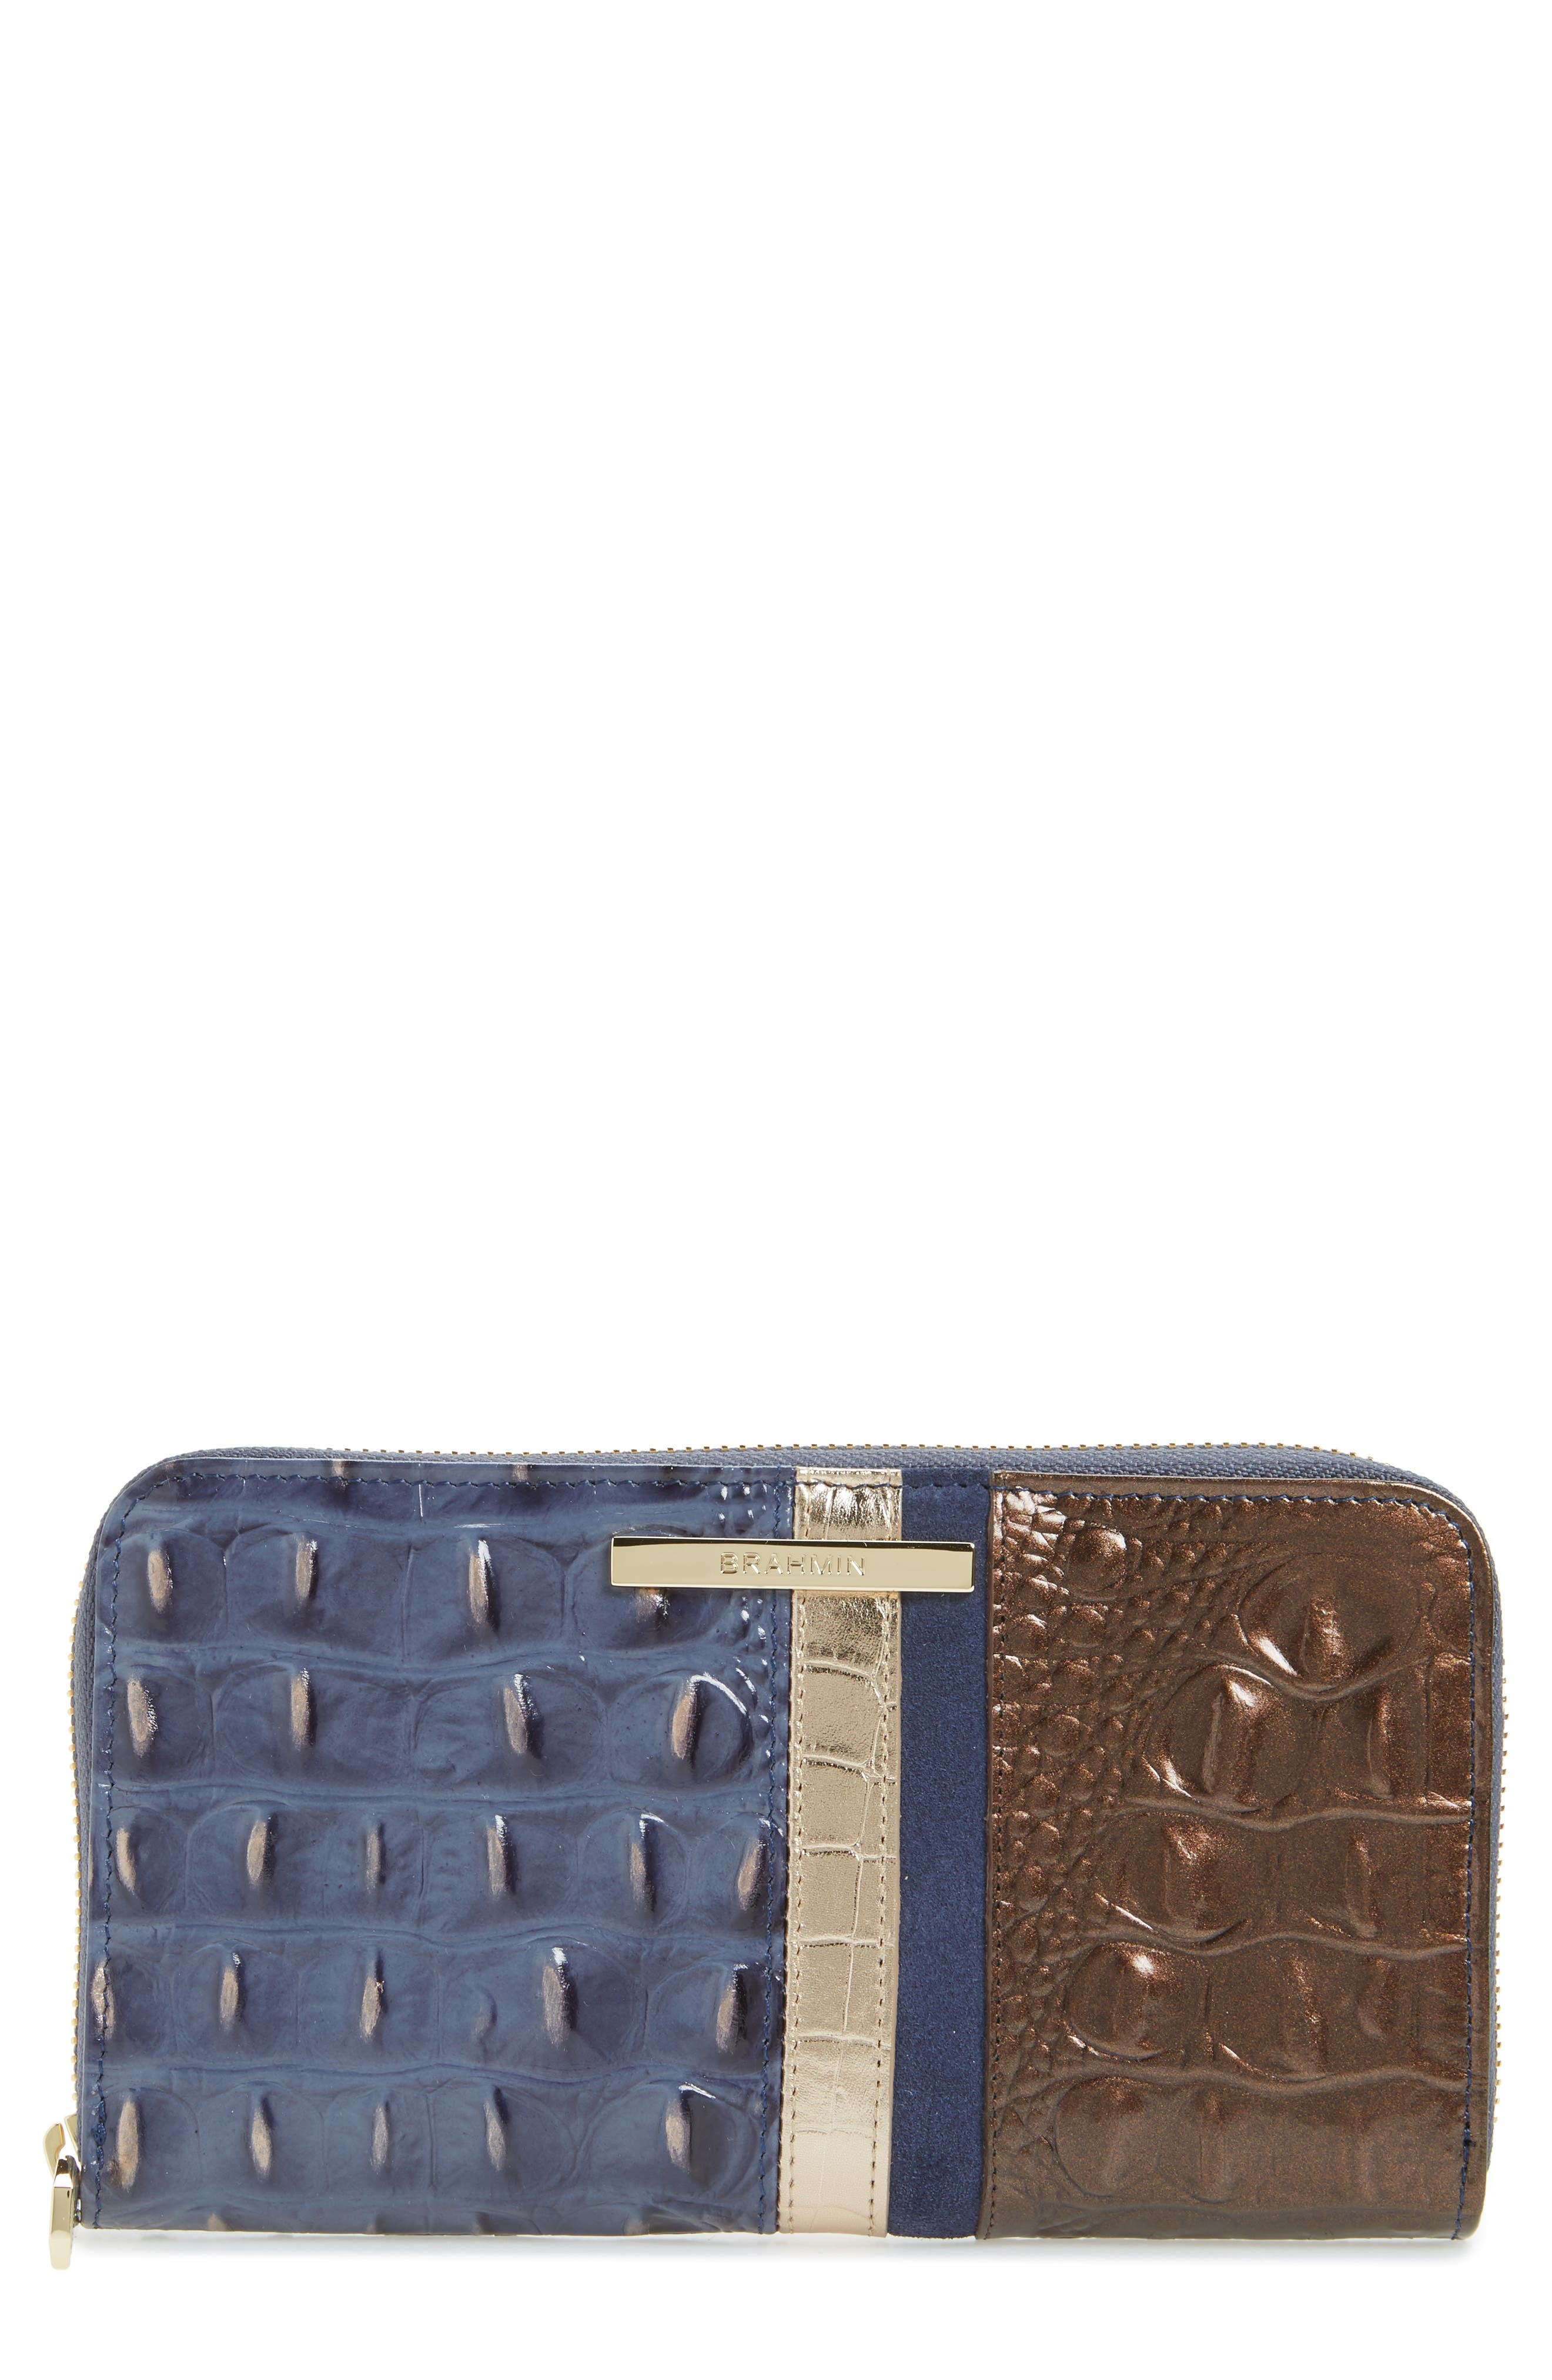 Brahmin Andesite Orba - Suri Zip Around Leather Wallet